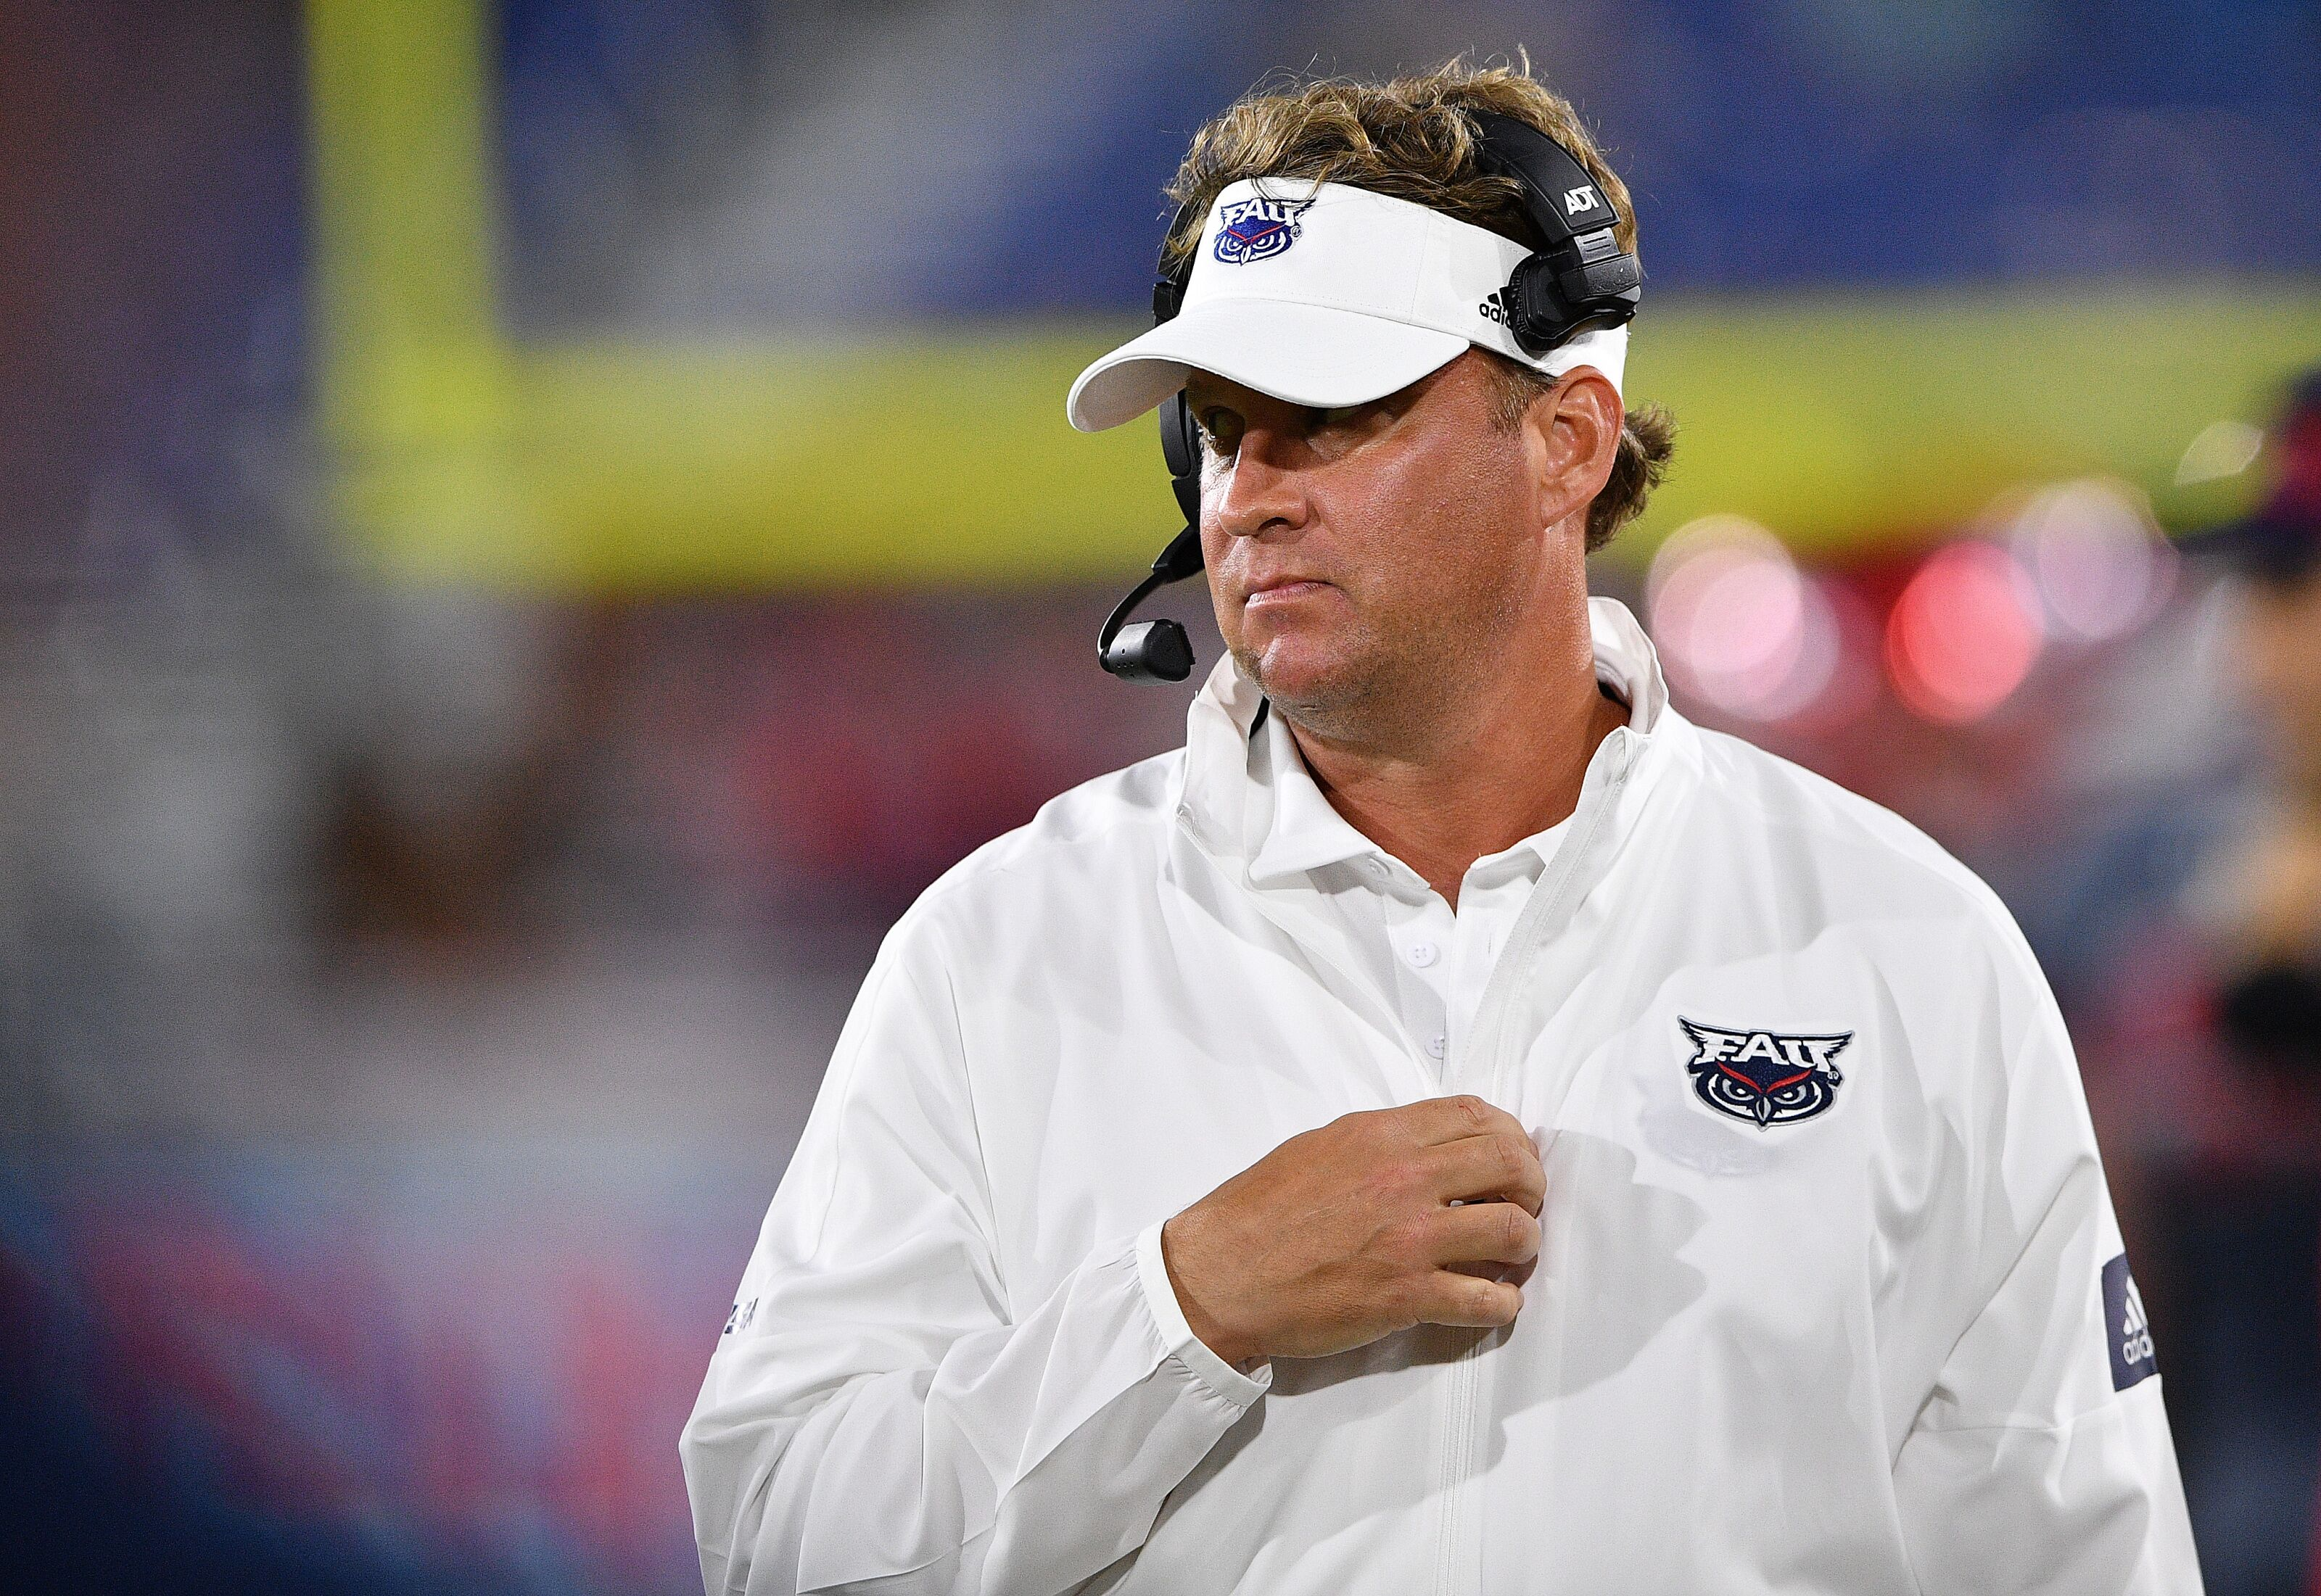 Grading every coaching hire of 2020 coaching carousel: Lane Kiffin, Mike Norvell earn high marks